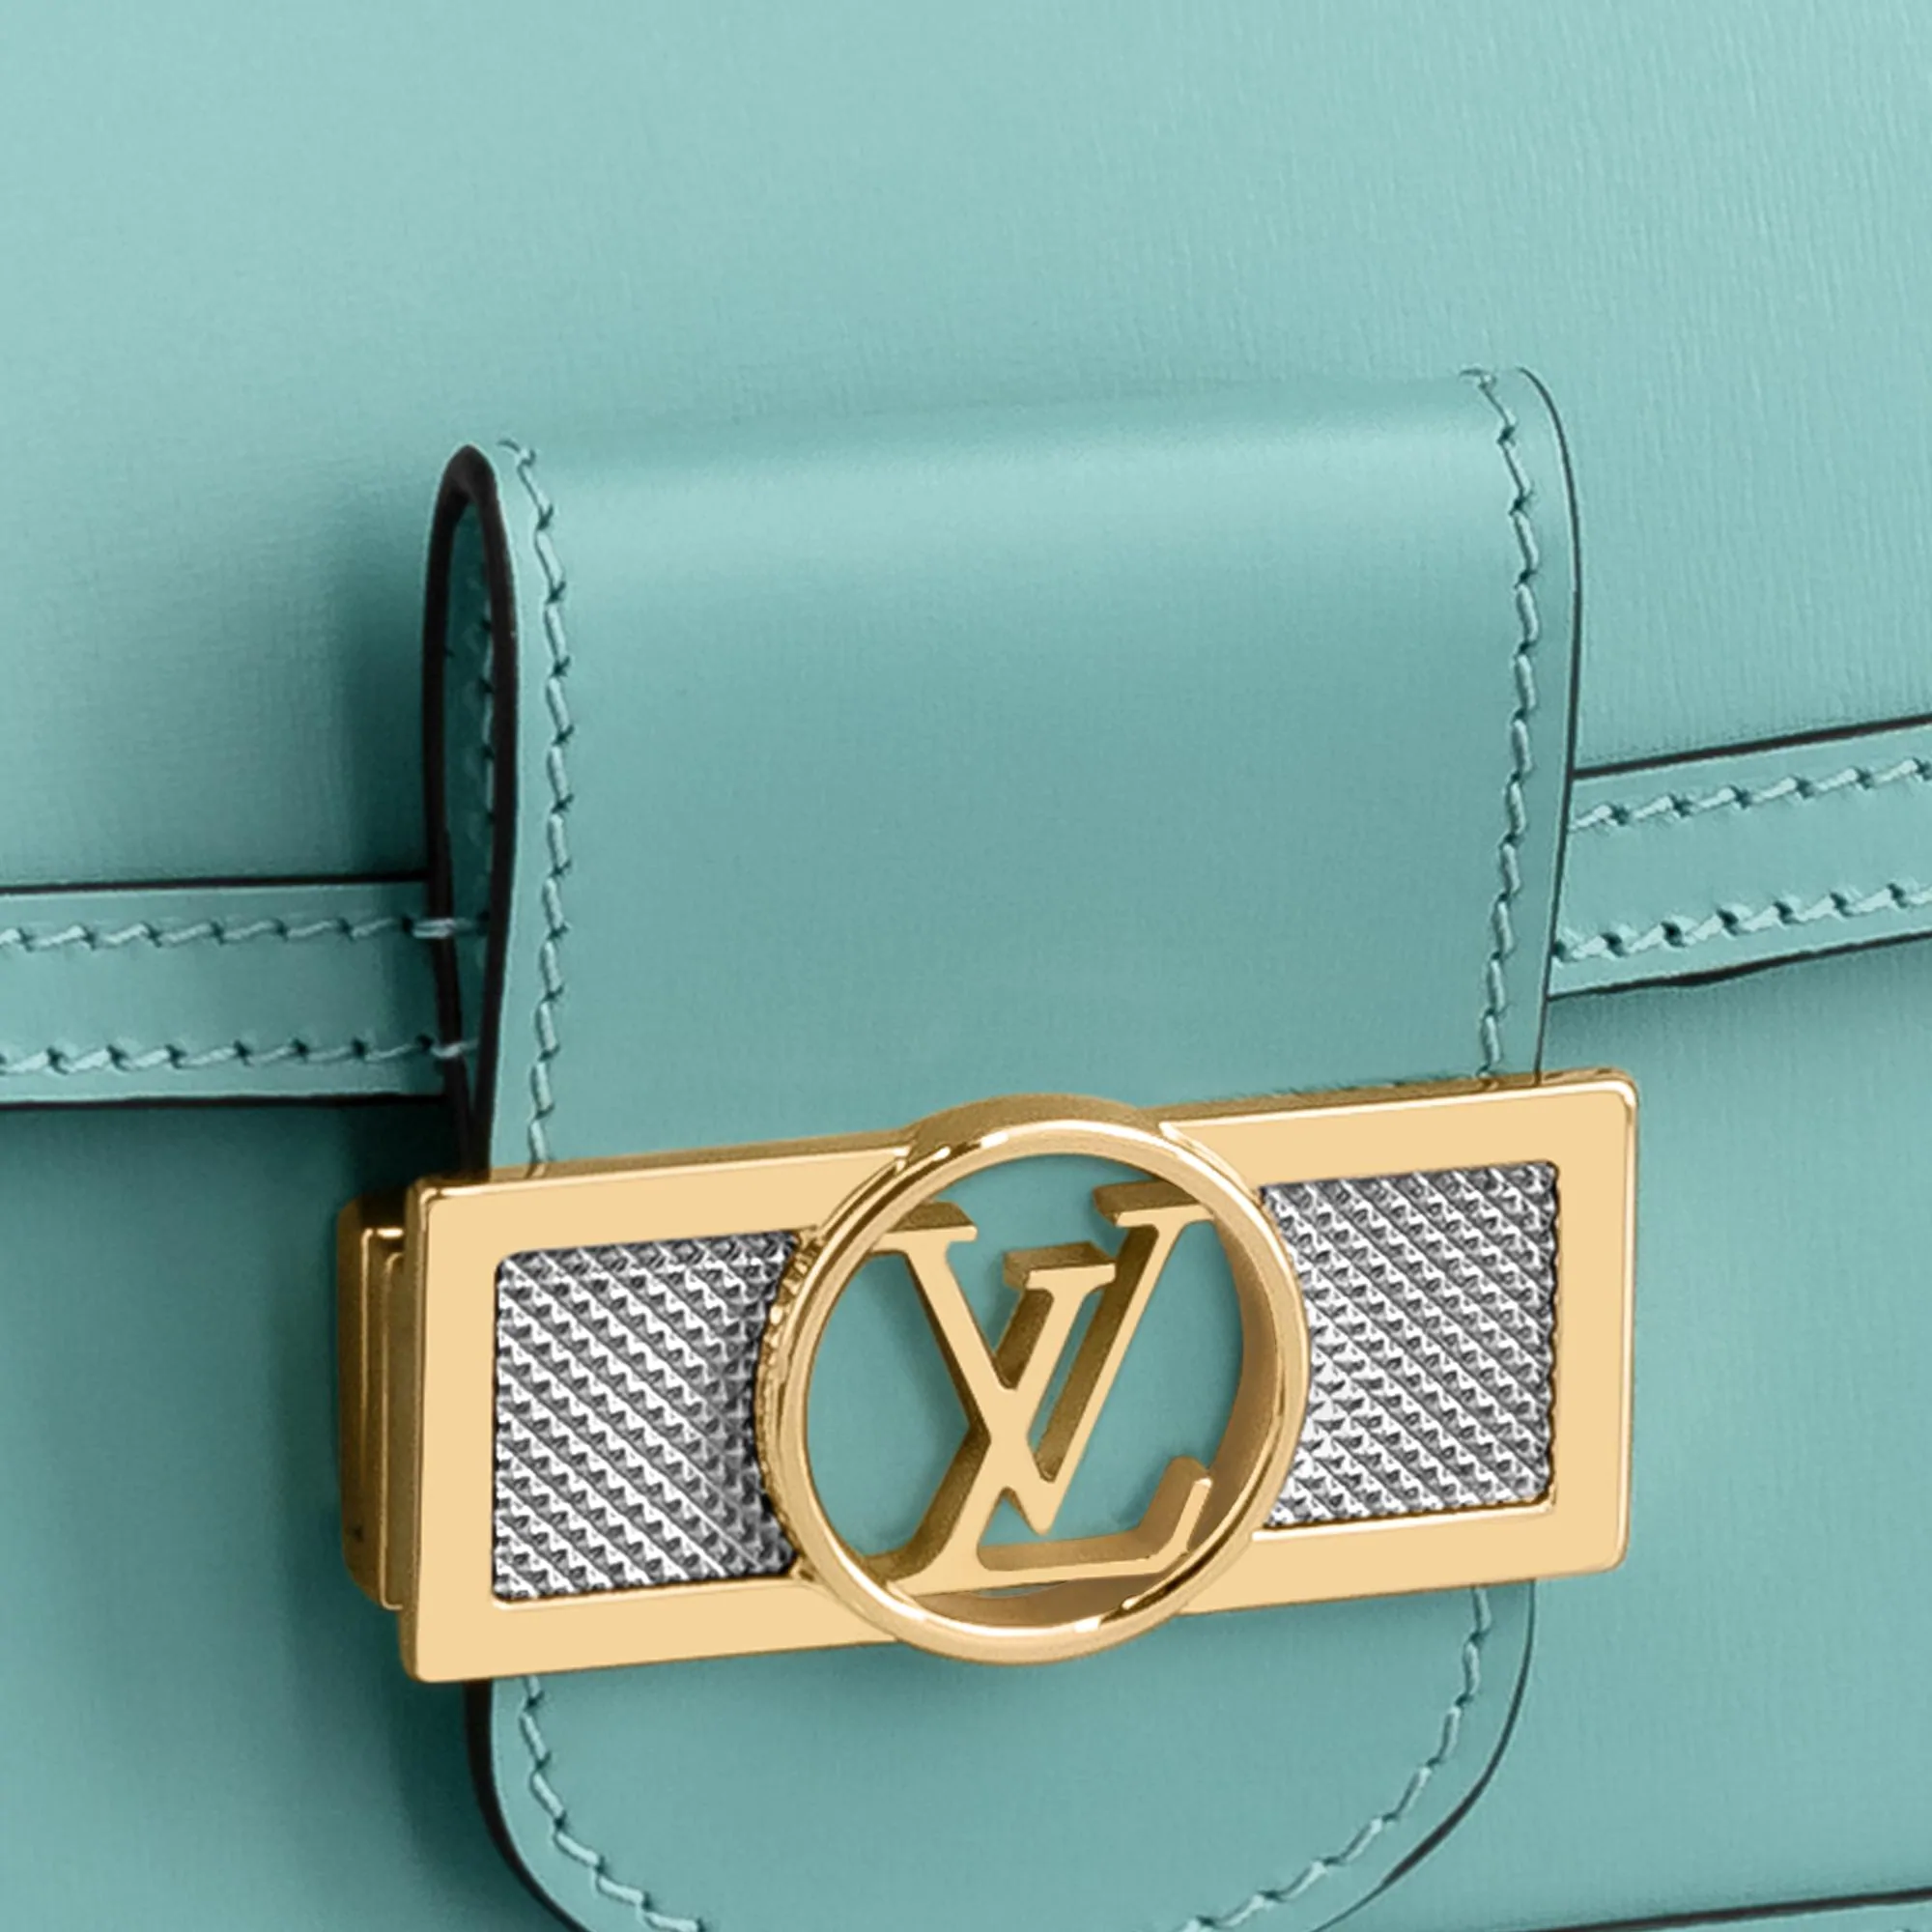 유럽직배송 루이비통 LOUIS VUITTON Mini Dauphine M55837